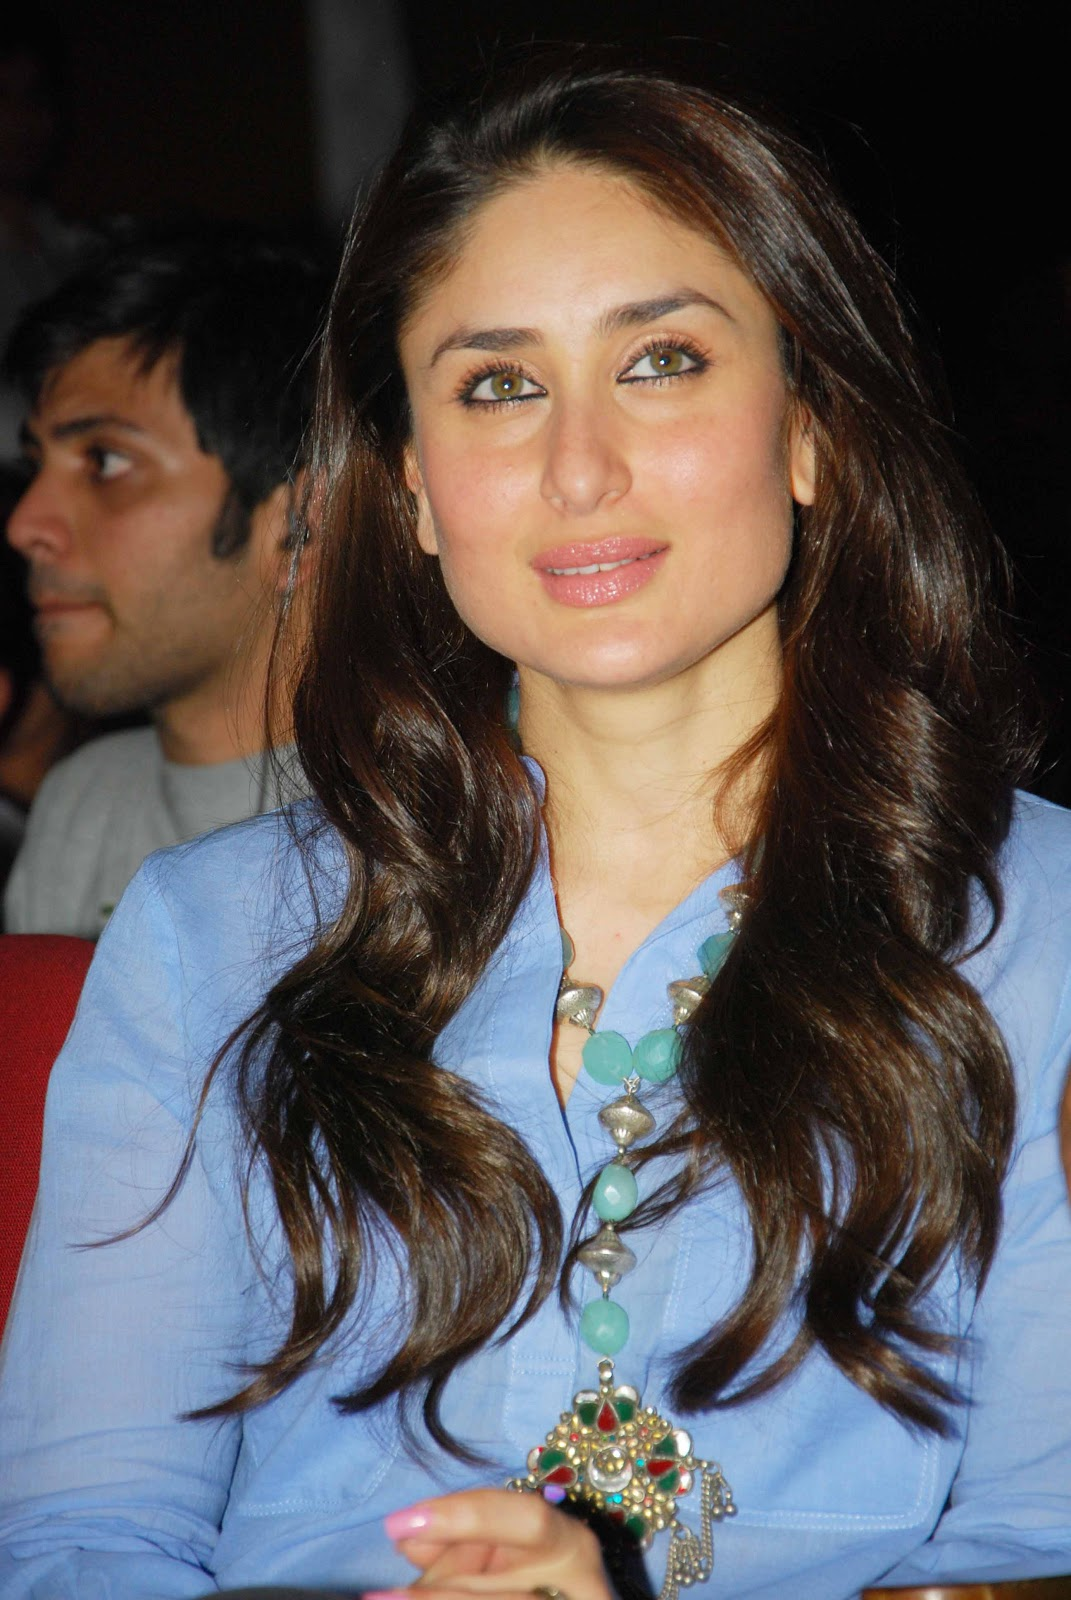 Kareena kapoor Looks Absolutely Gorgeous In Blue Top and Black Trouser At The National College Festival In Bandra, Mumbai